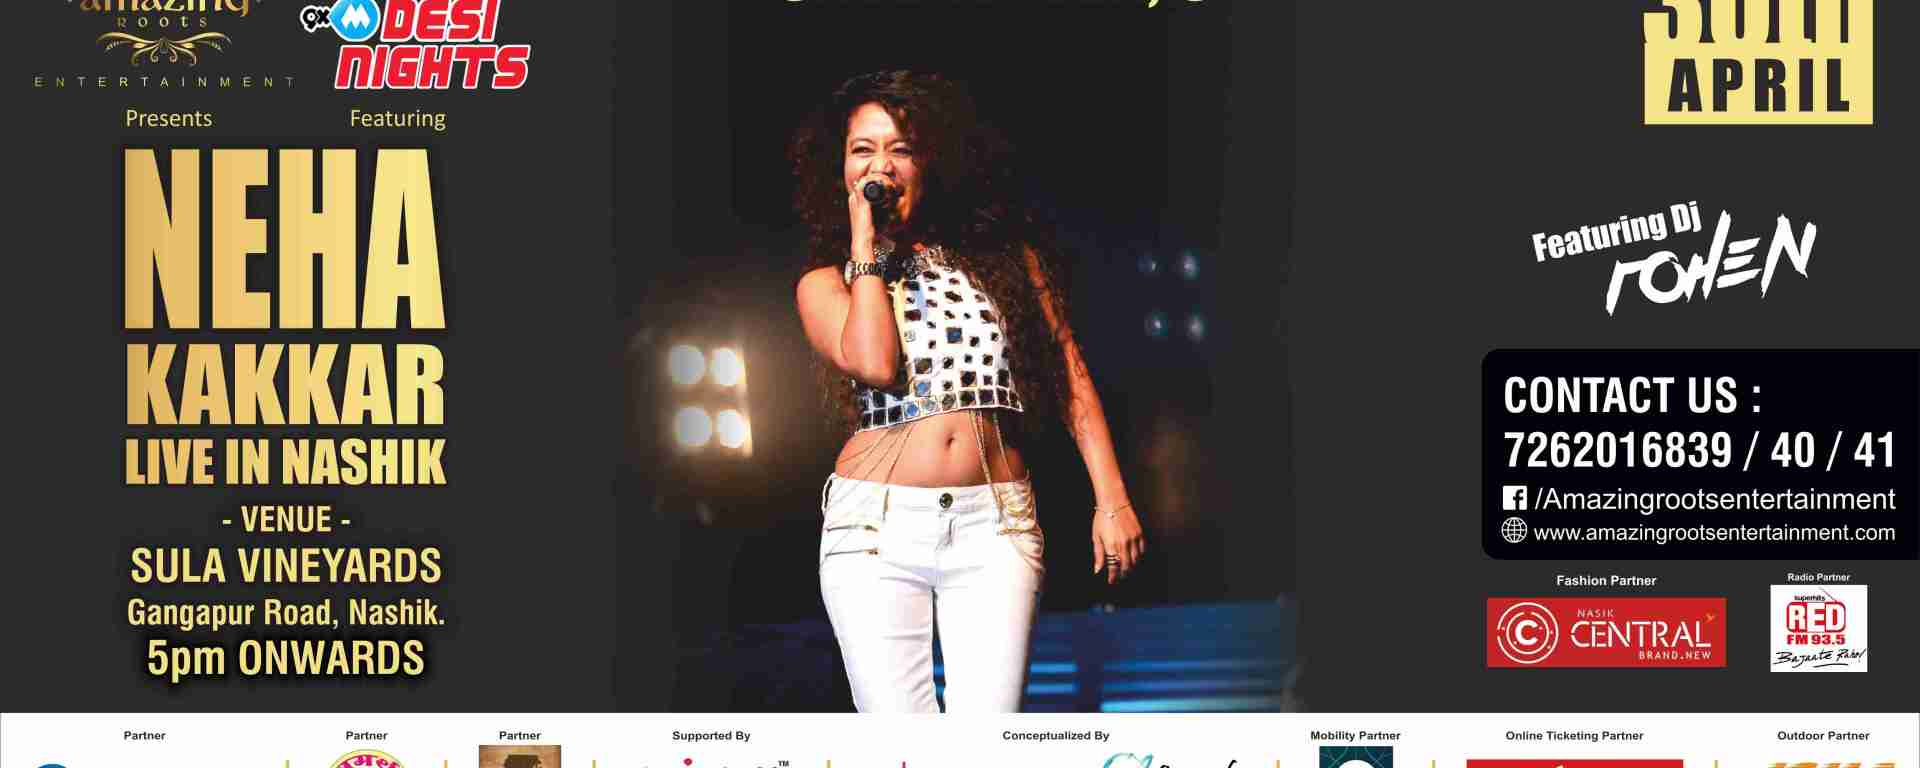 Neha Kakkar Live in Nashik on 30th April 2016 – Just Nashik